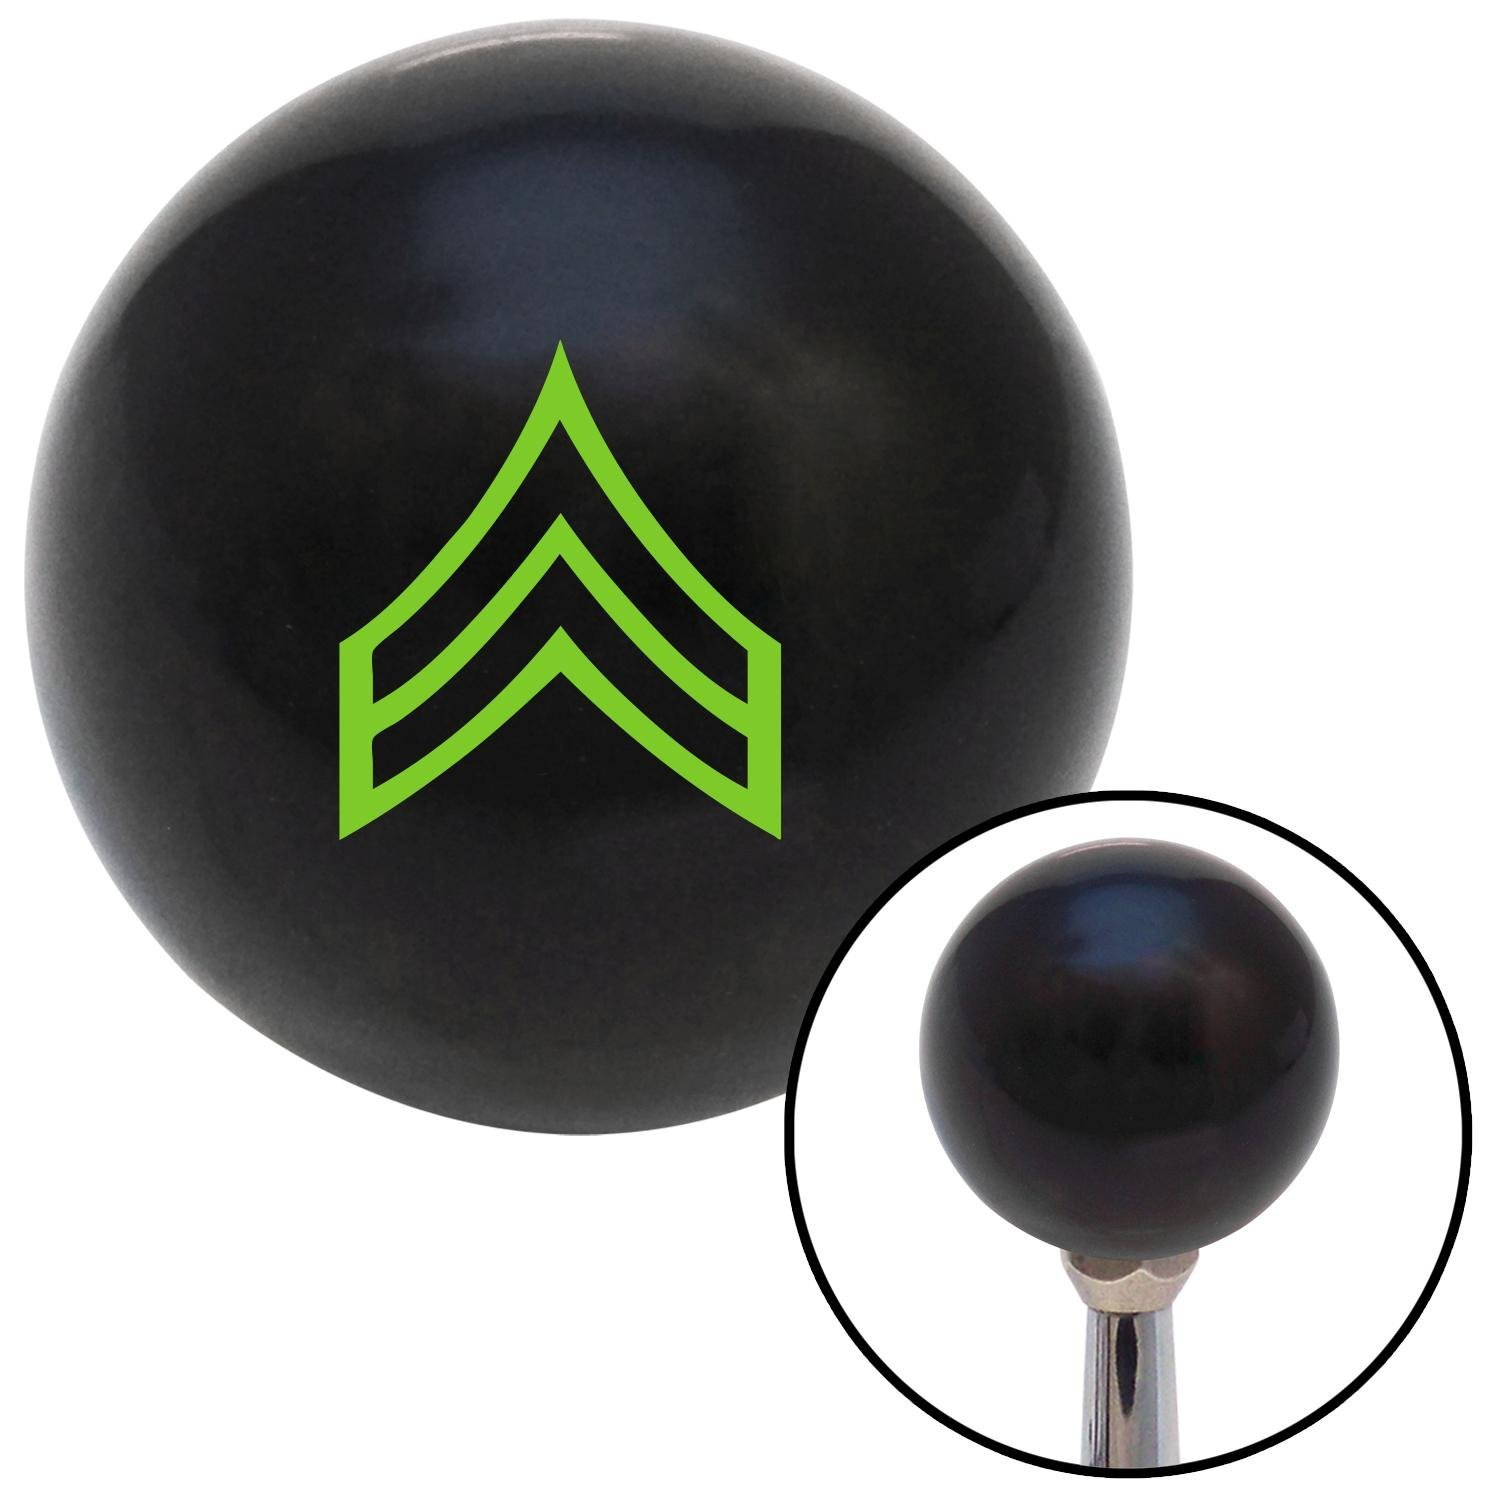 Green Corporal American Shifter 106556 Black Shift Knob with M16 x 1.5 Insert